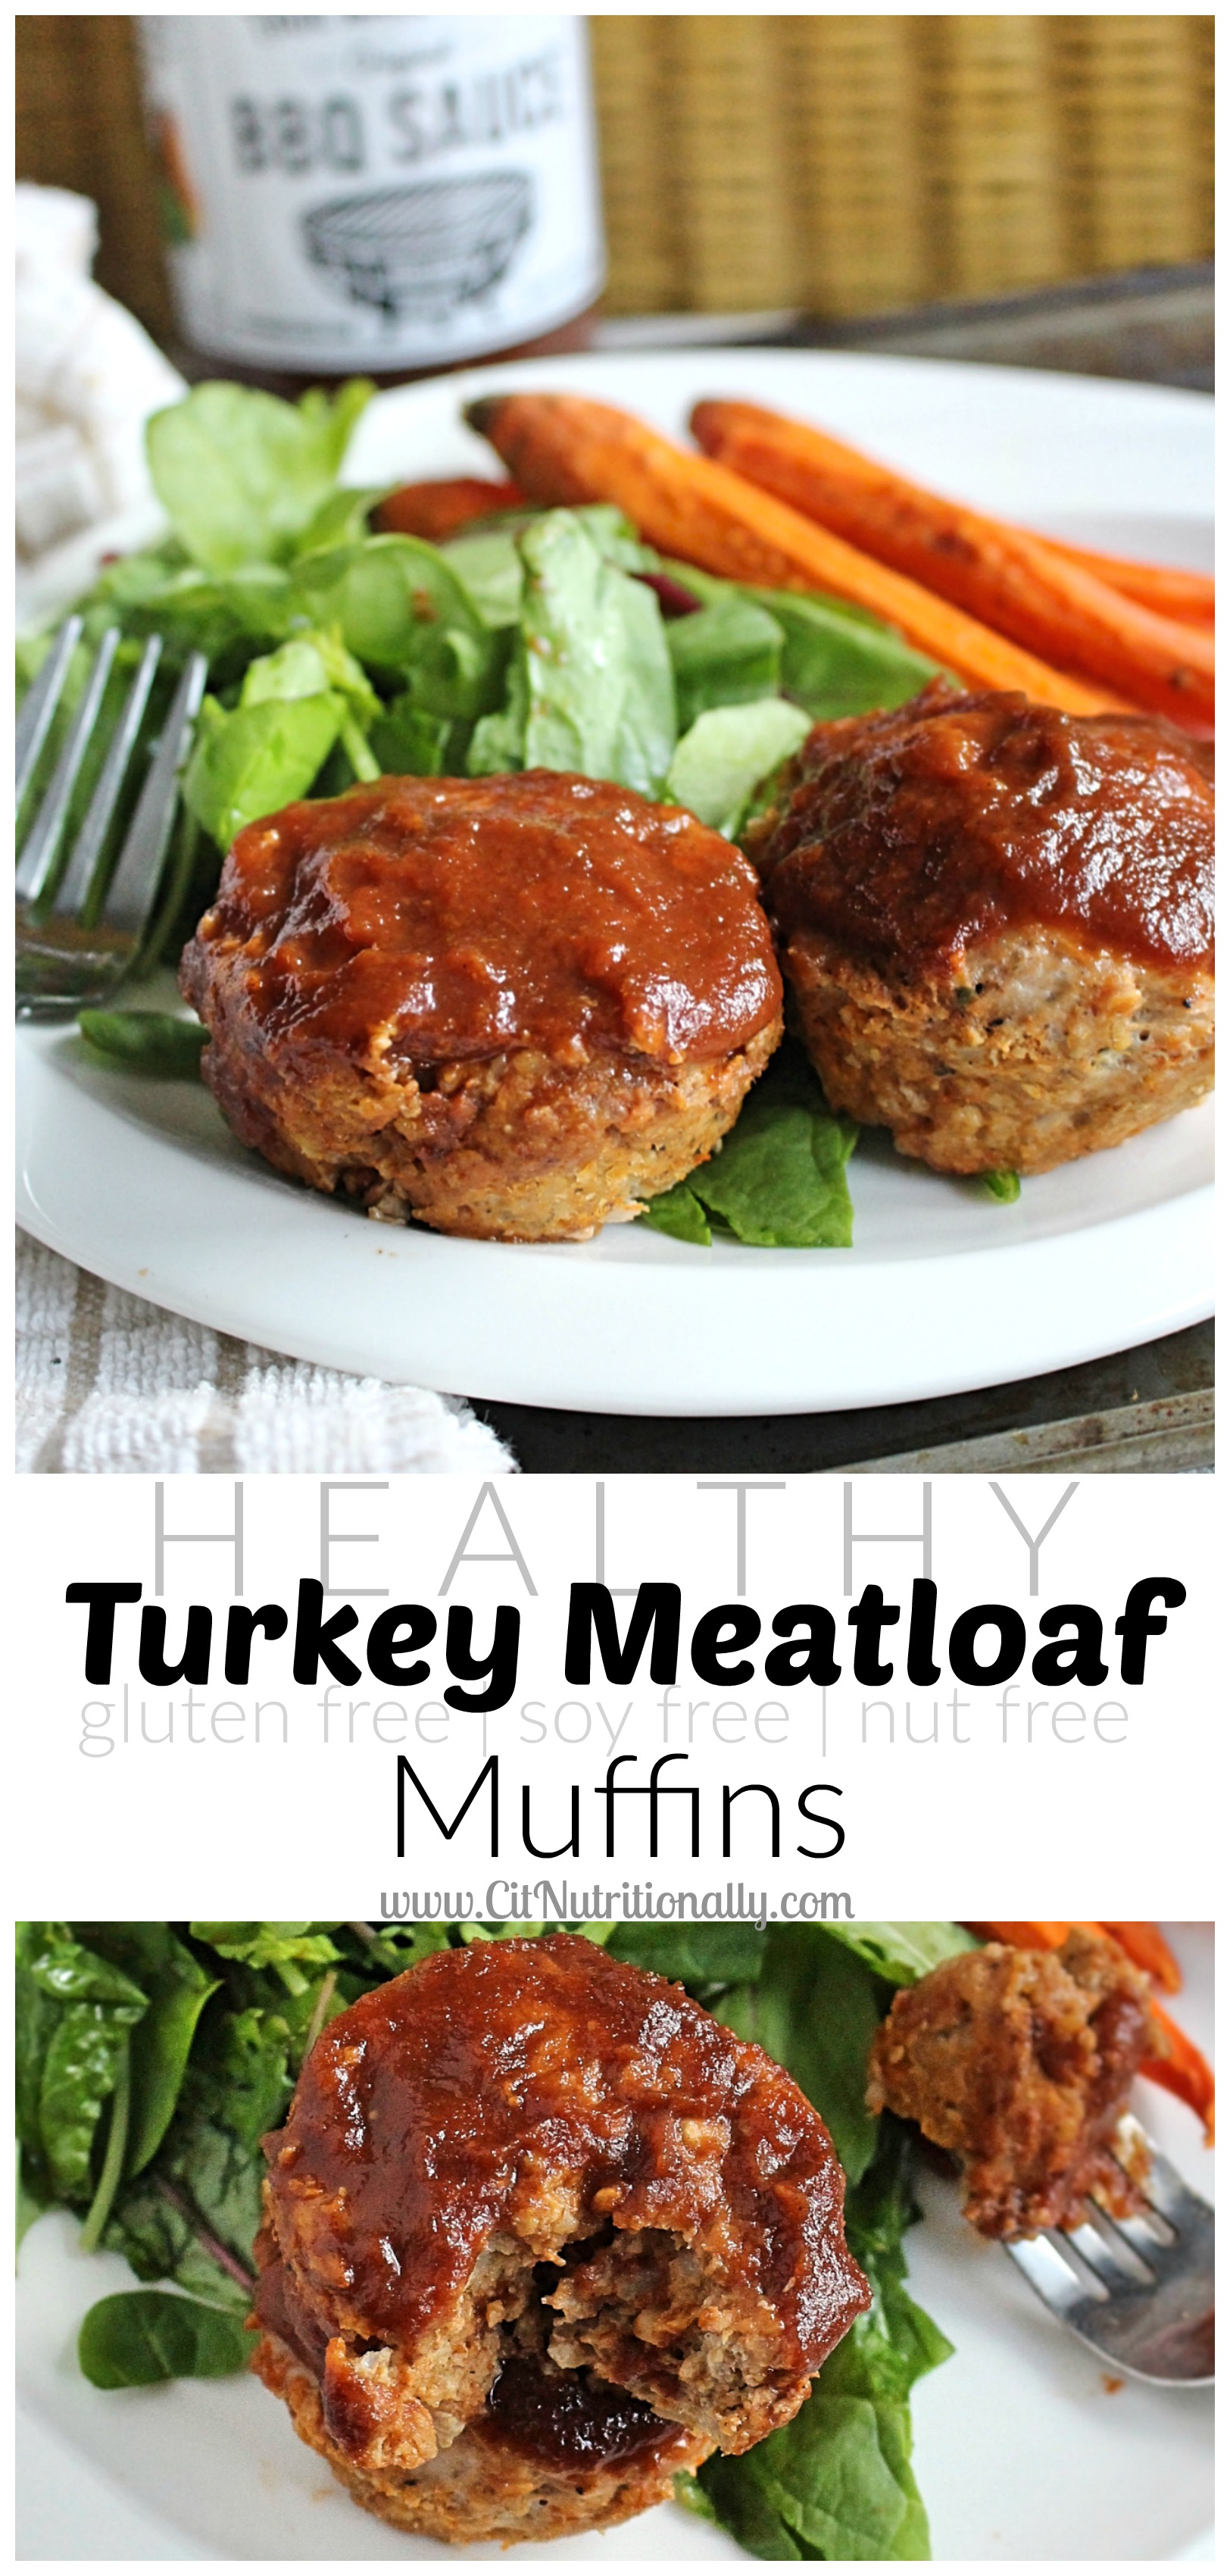 Gluten Free Healthy Turkey Meatloaf Muffins {Frugal Friday Week 6} | C it Nutritionally